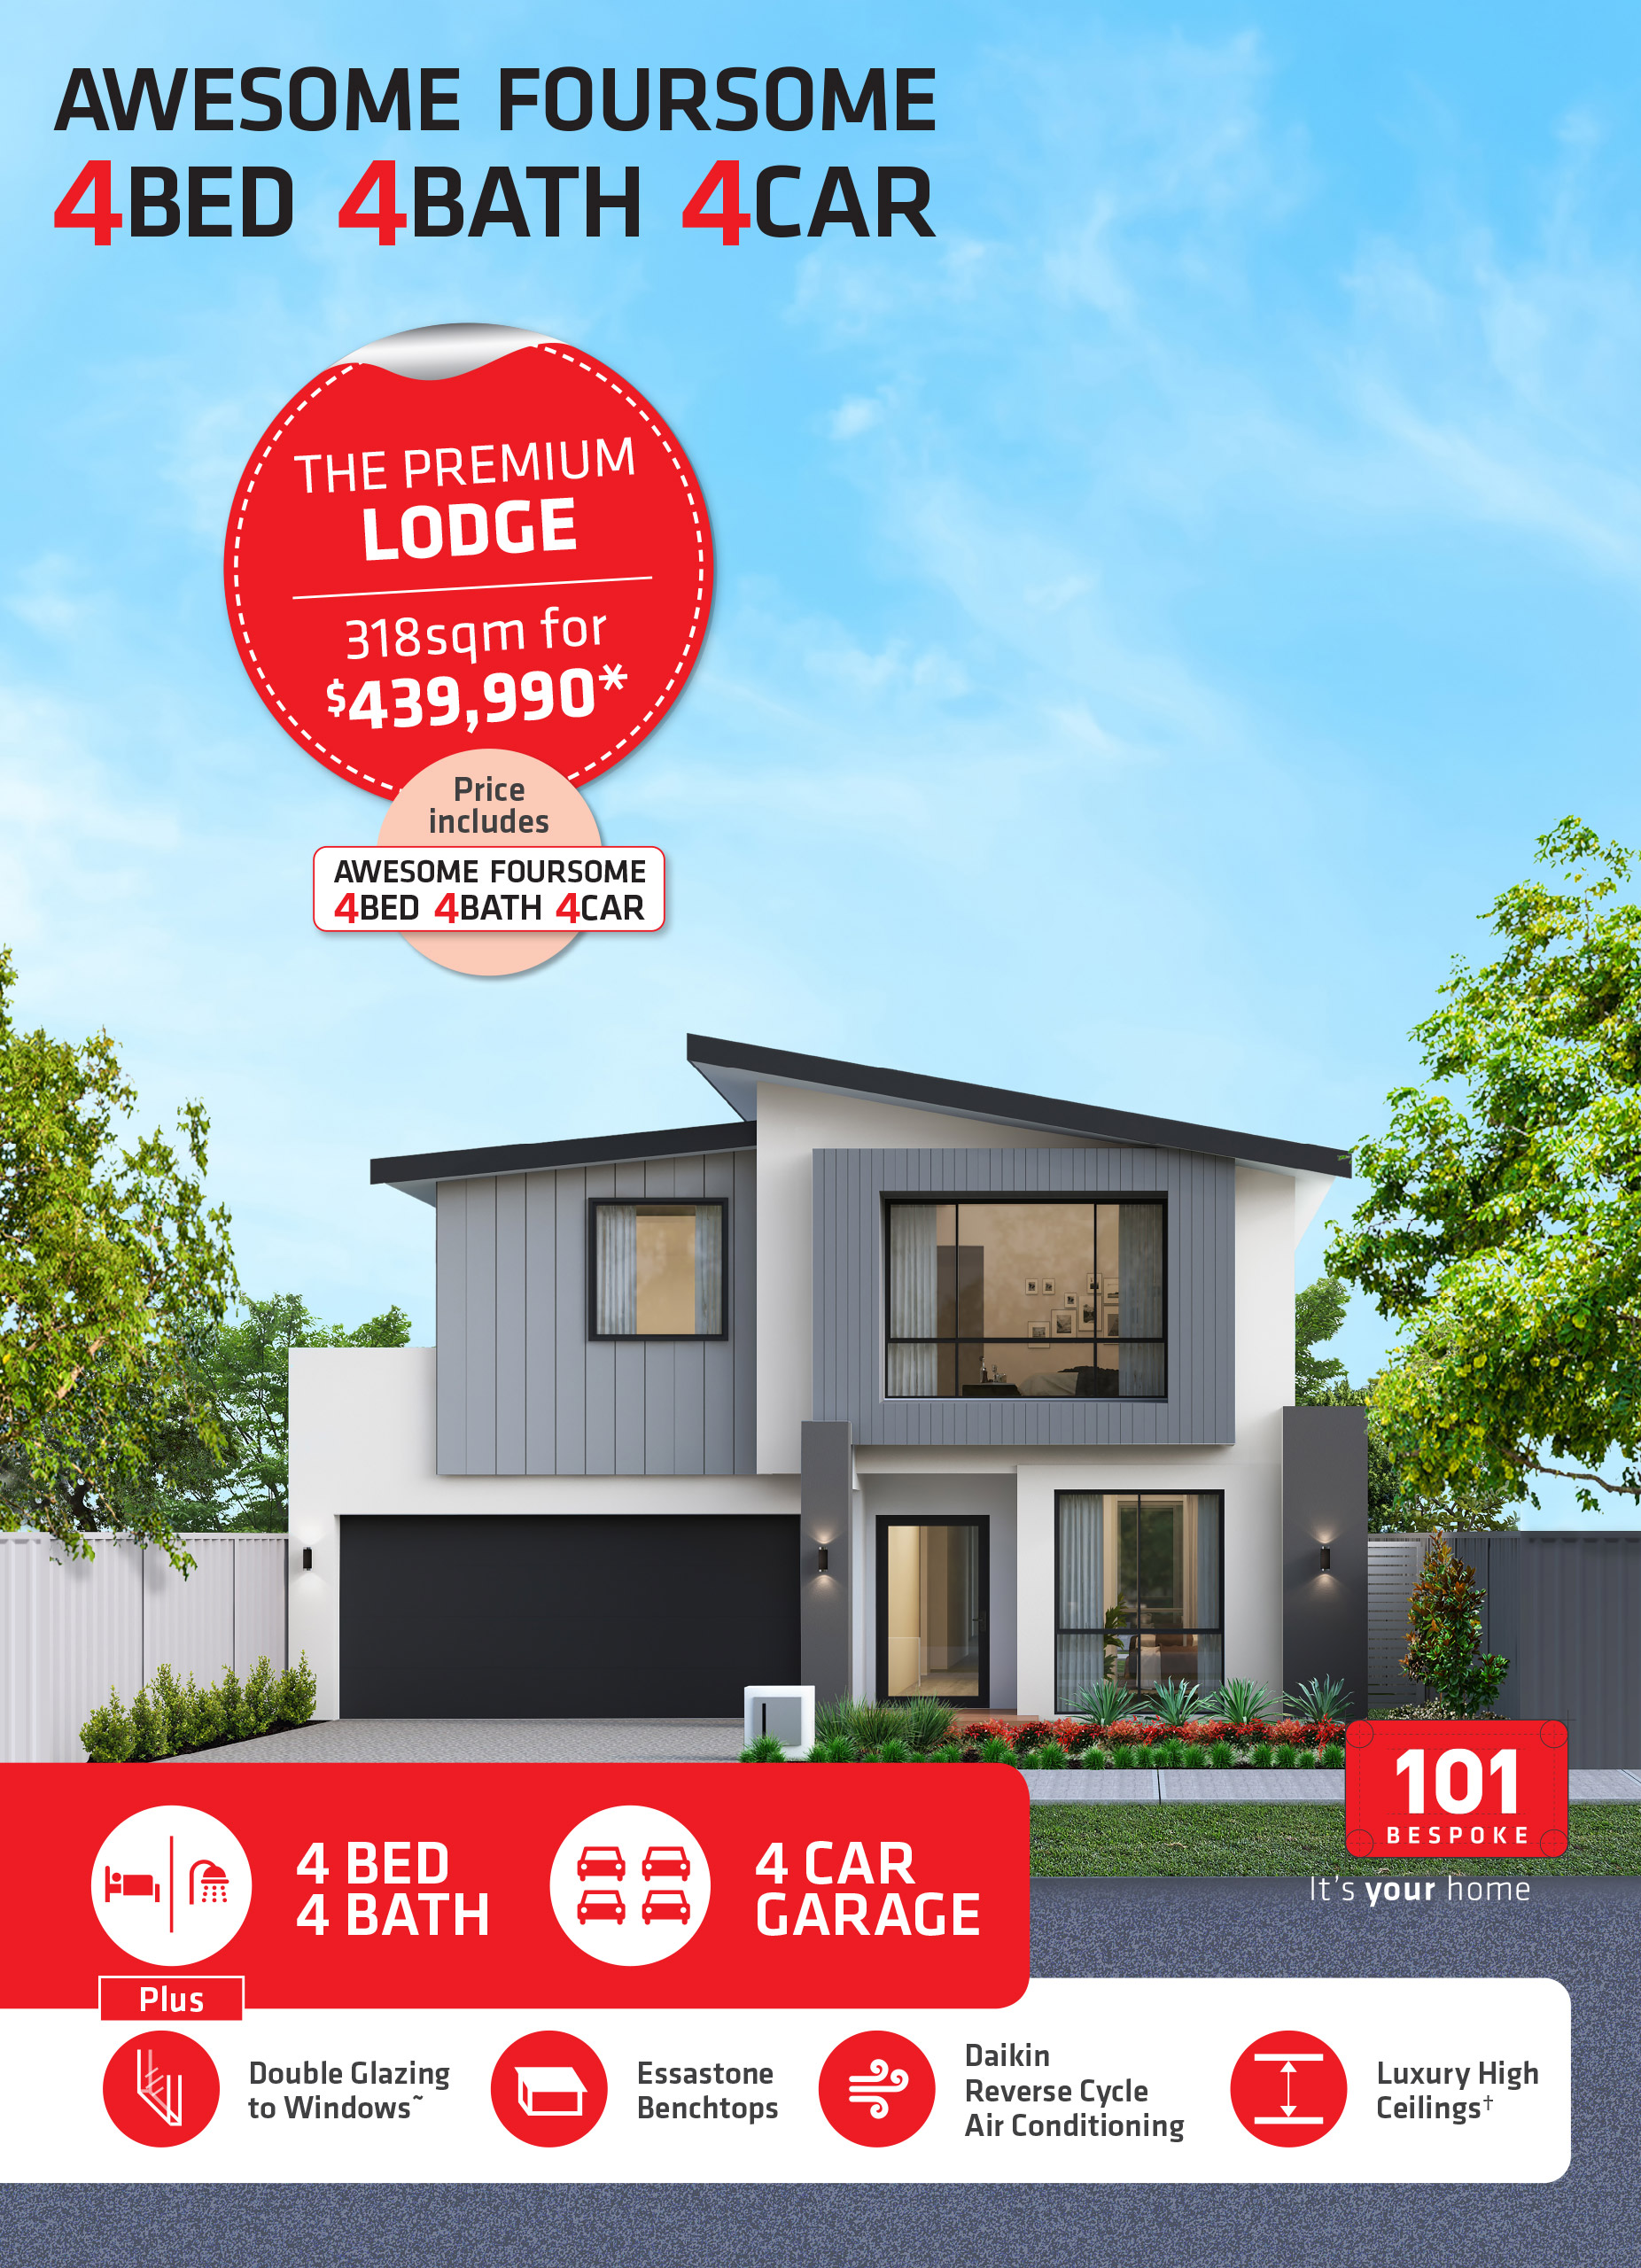 101 Residential Awesome Foursome promotion banner